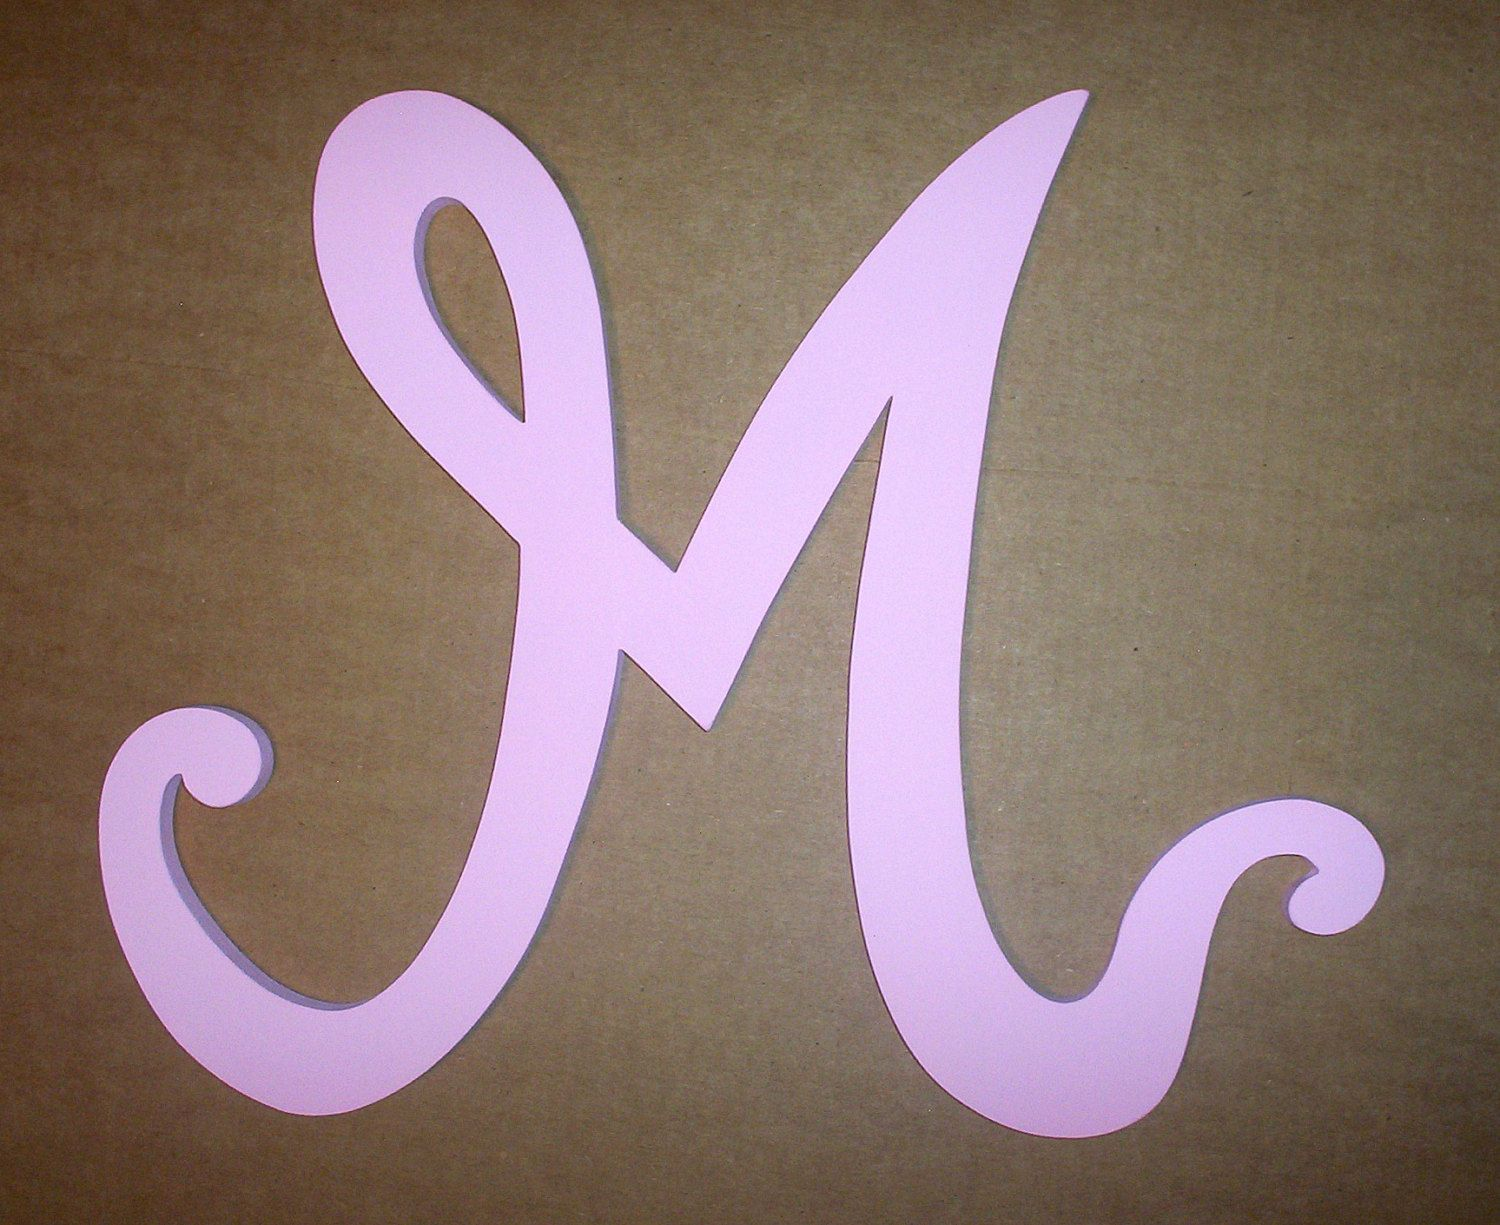 Handmade Wooden M Letter Feminine Font Wall Decor Decorative Girls Room Modern Painted In Baby Pink Wood Initial Nursery Home Decor By Lettersofwood On Etsy